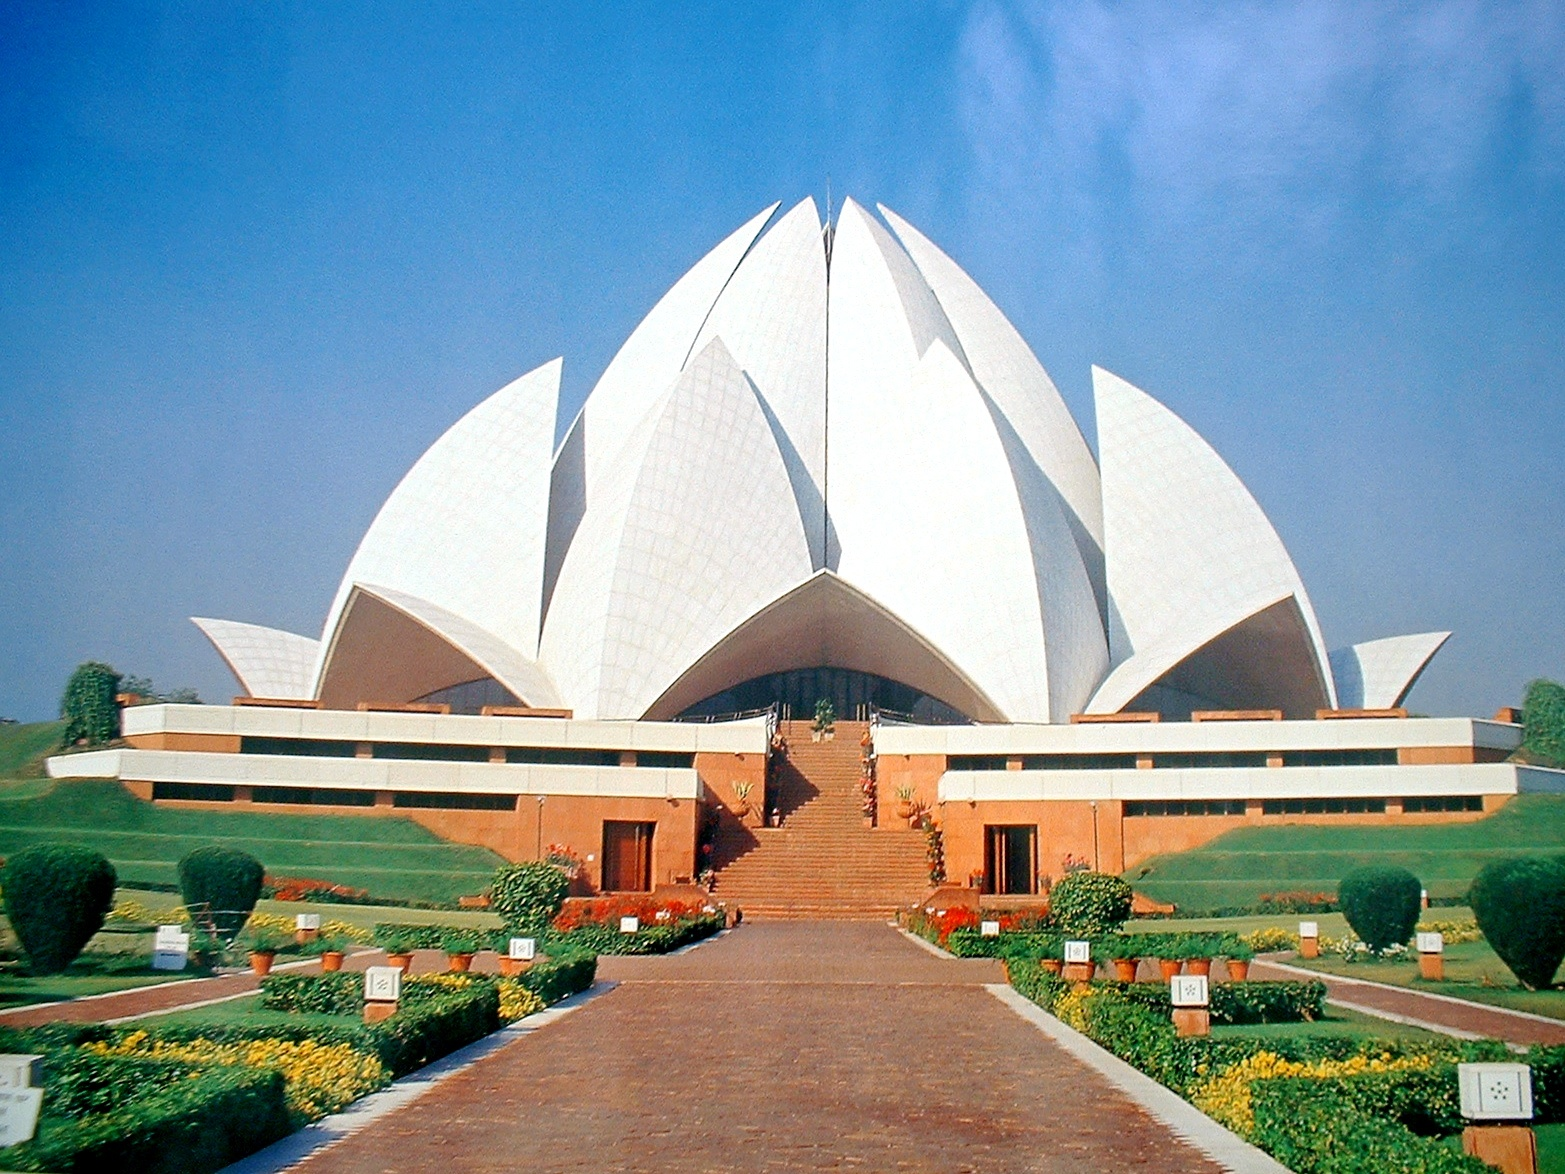 lotus temple by indian, Photography->Places of worship gallery